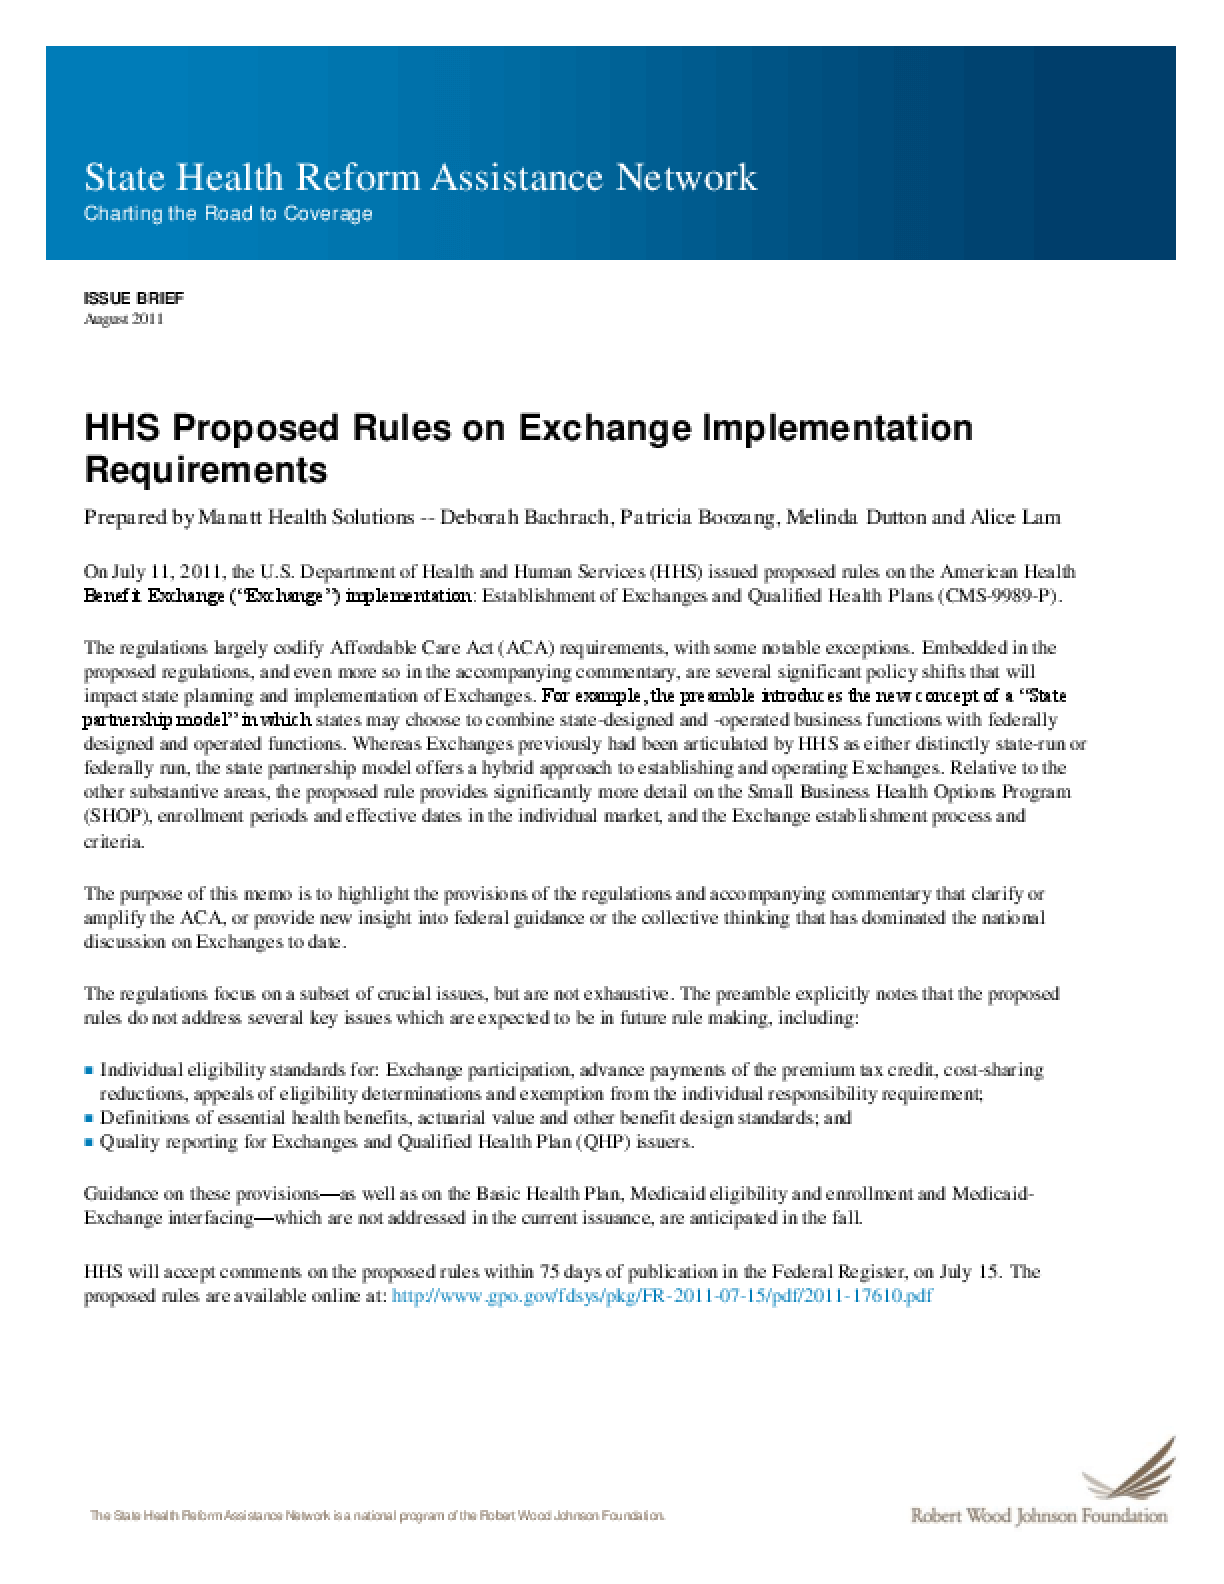 HHS Proposed Rules on Exchange Implementation Requirements